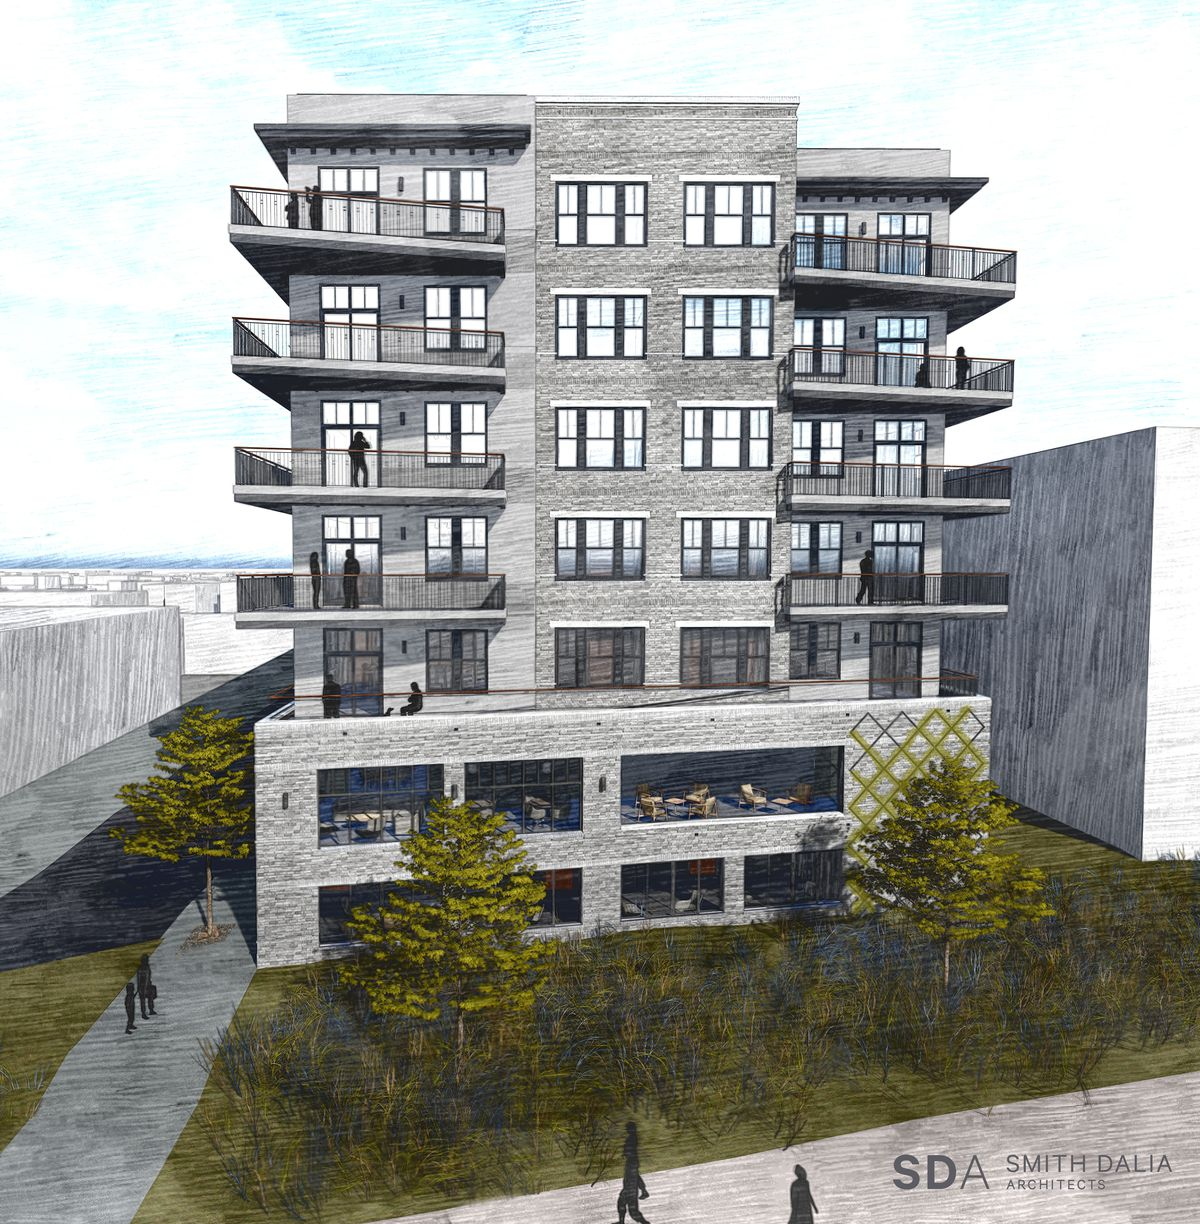 A rendering shows two floors of amenity space fronting the Beltline, topped by five stories of residences.